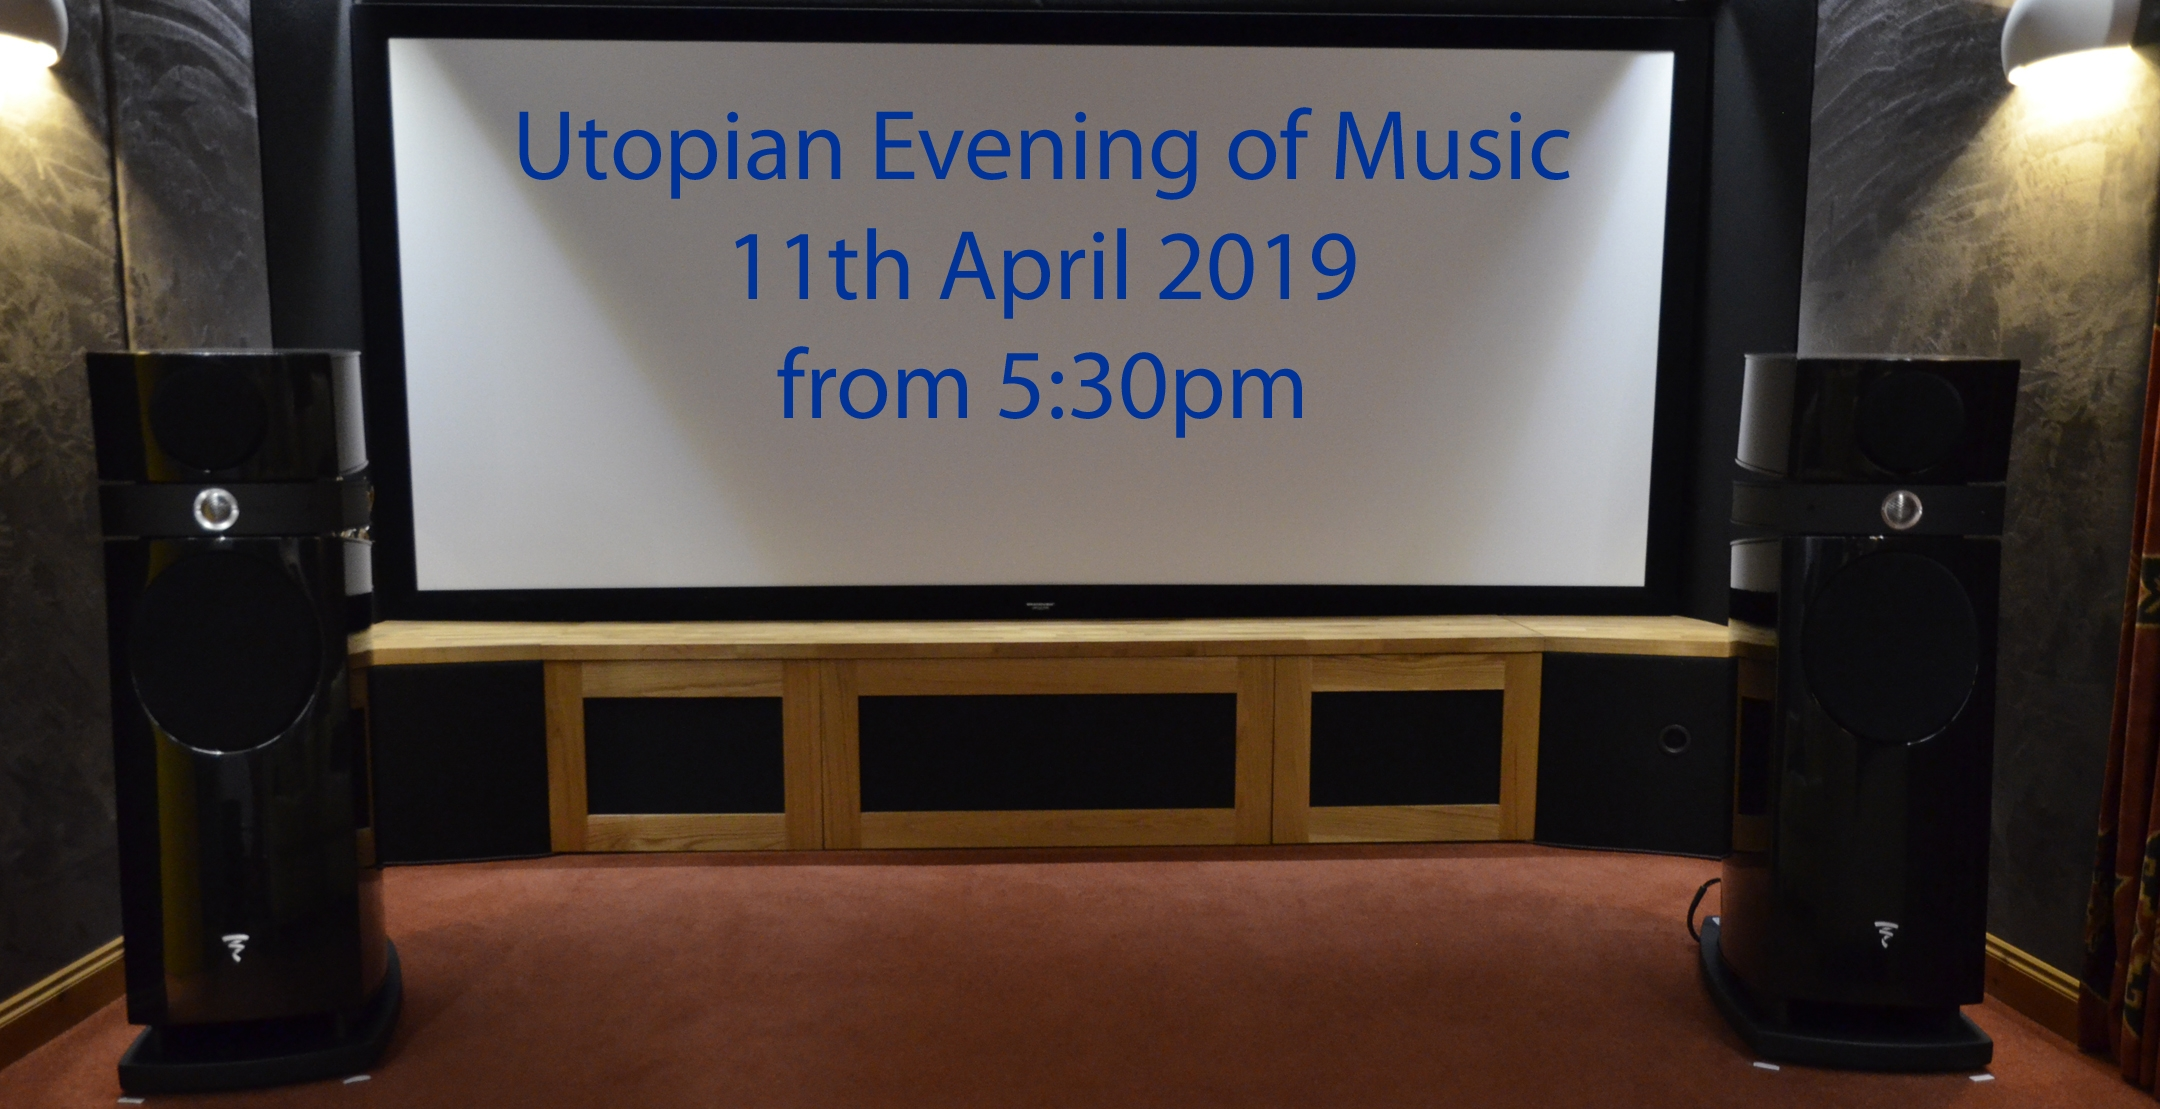 Utopian Evening of Music